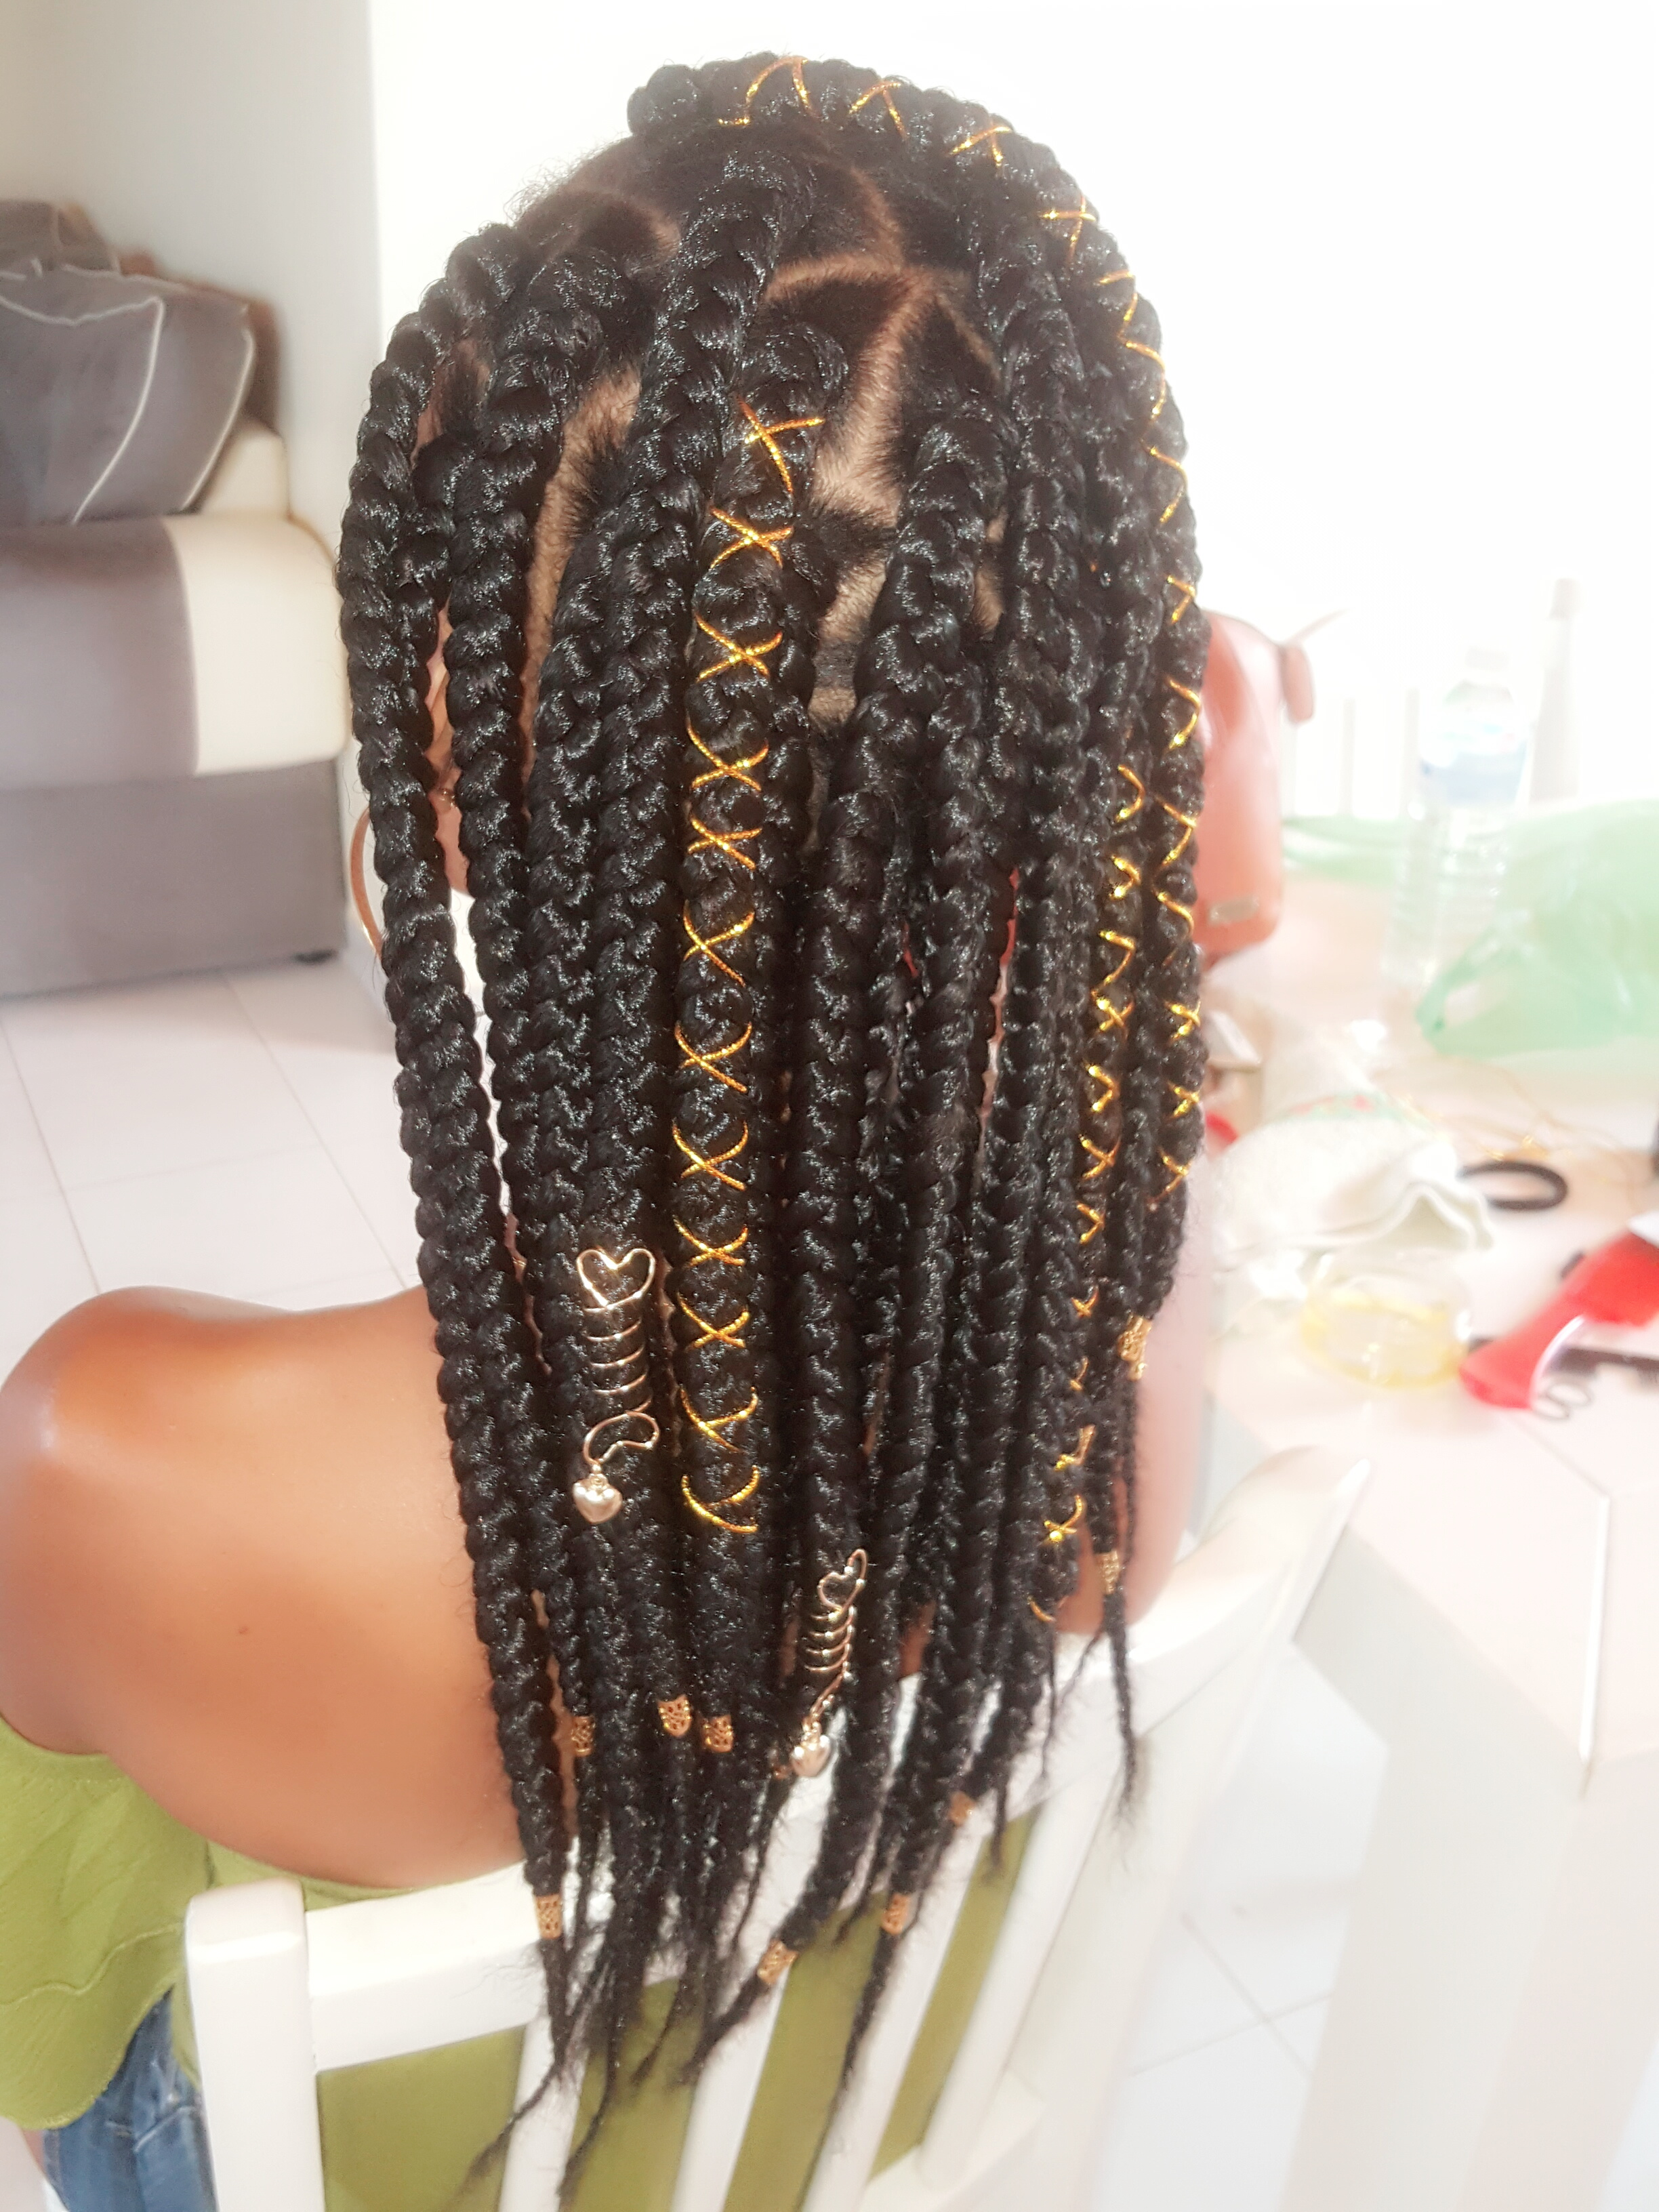 salon de coiffure afro tresse tresses box braids crochet braids vanilles tissages paris 75 77 78 91 92 93 94 95 GVVSSXBB